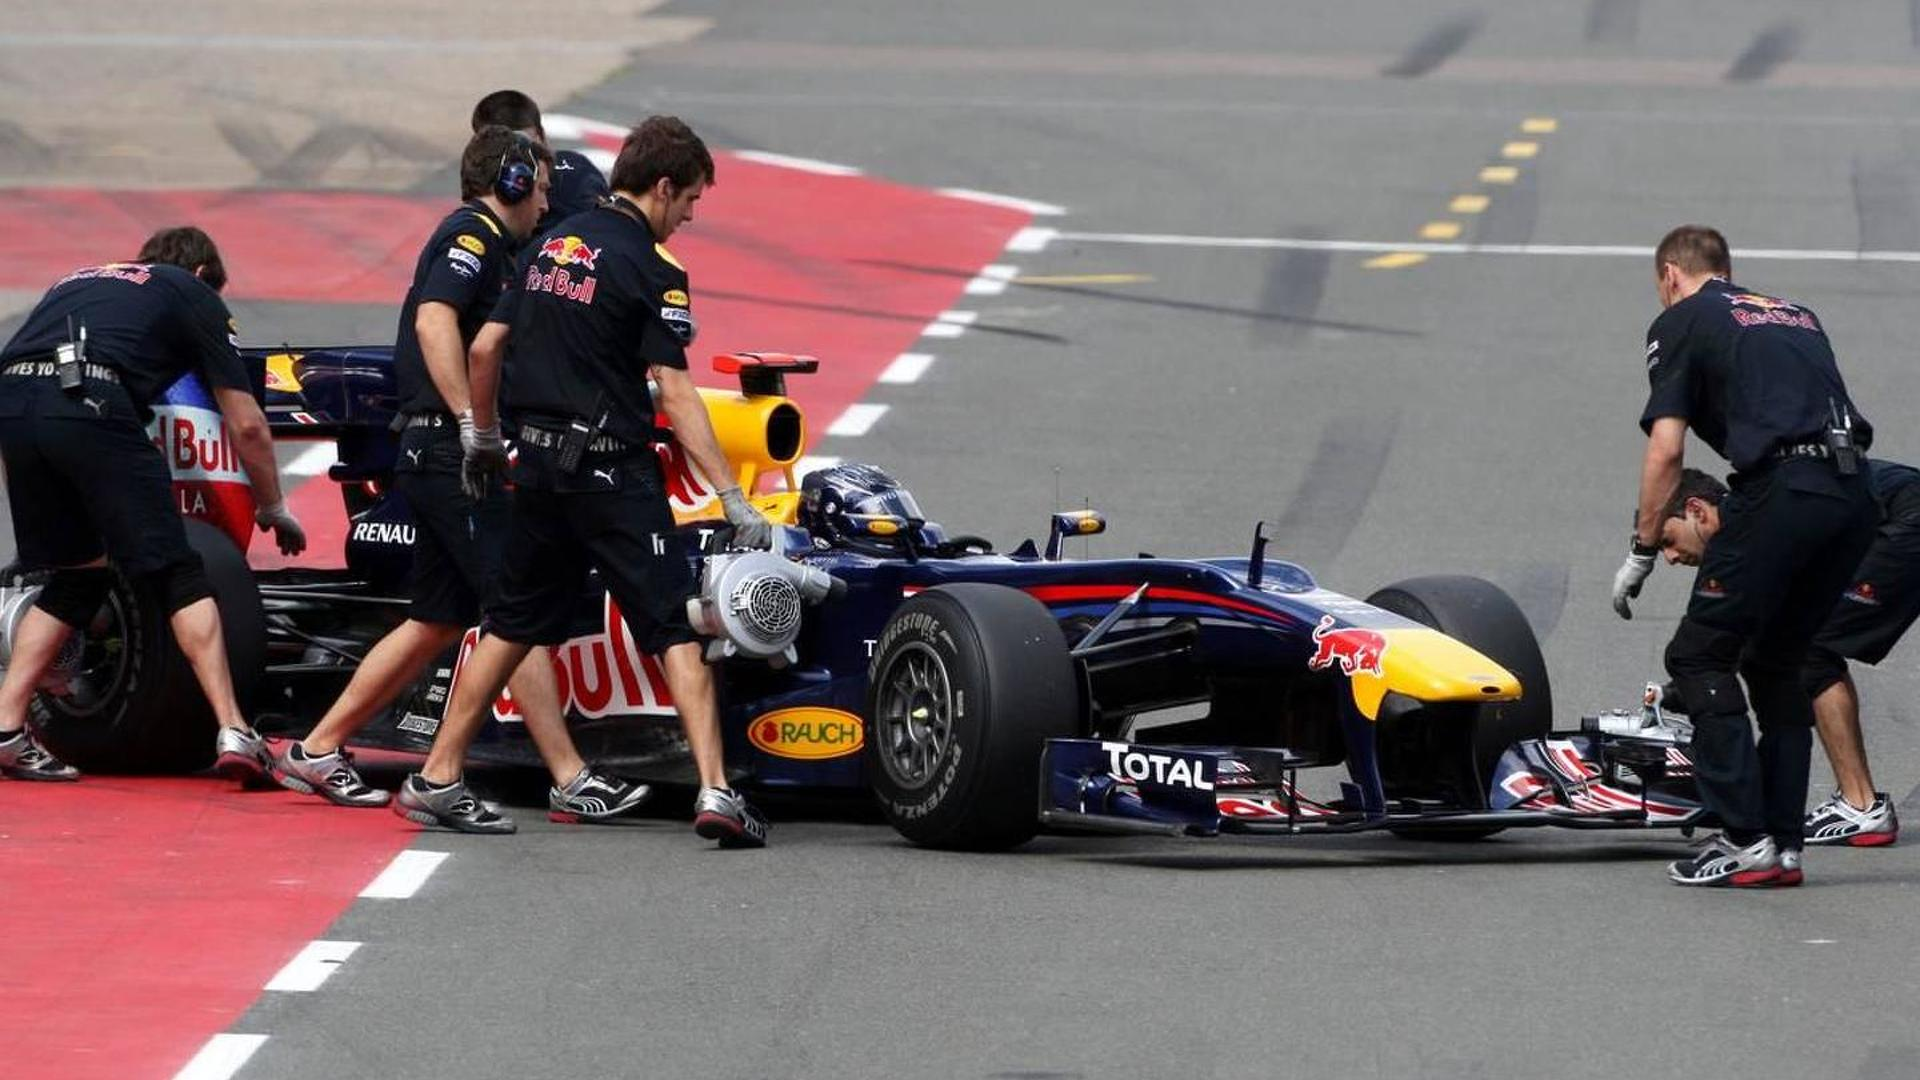 Nose-wing scare for quick Vettel in final practice